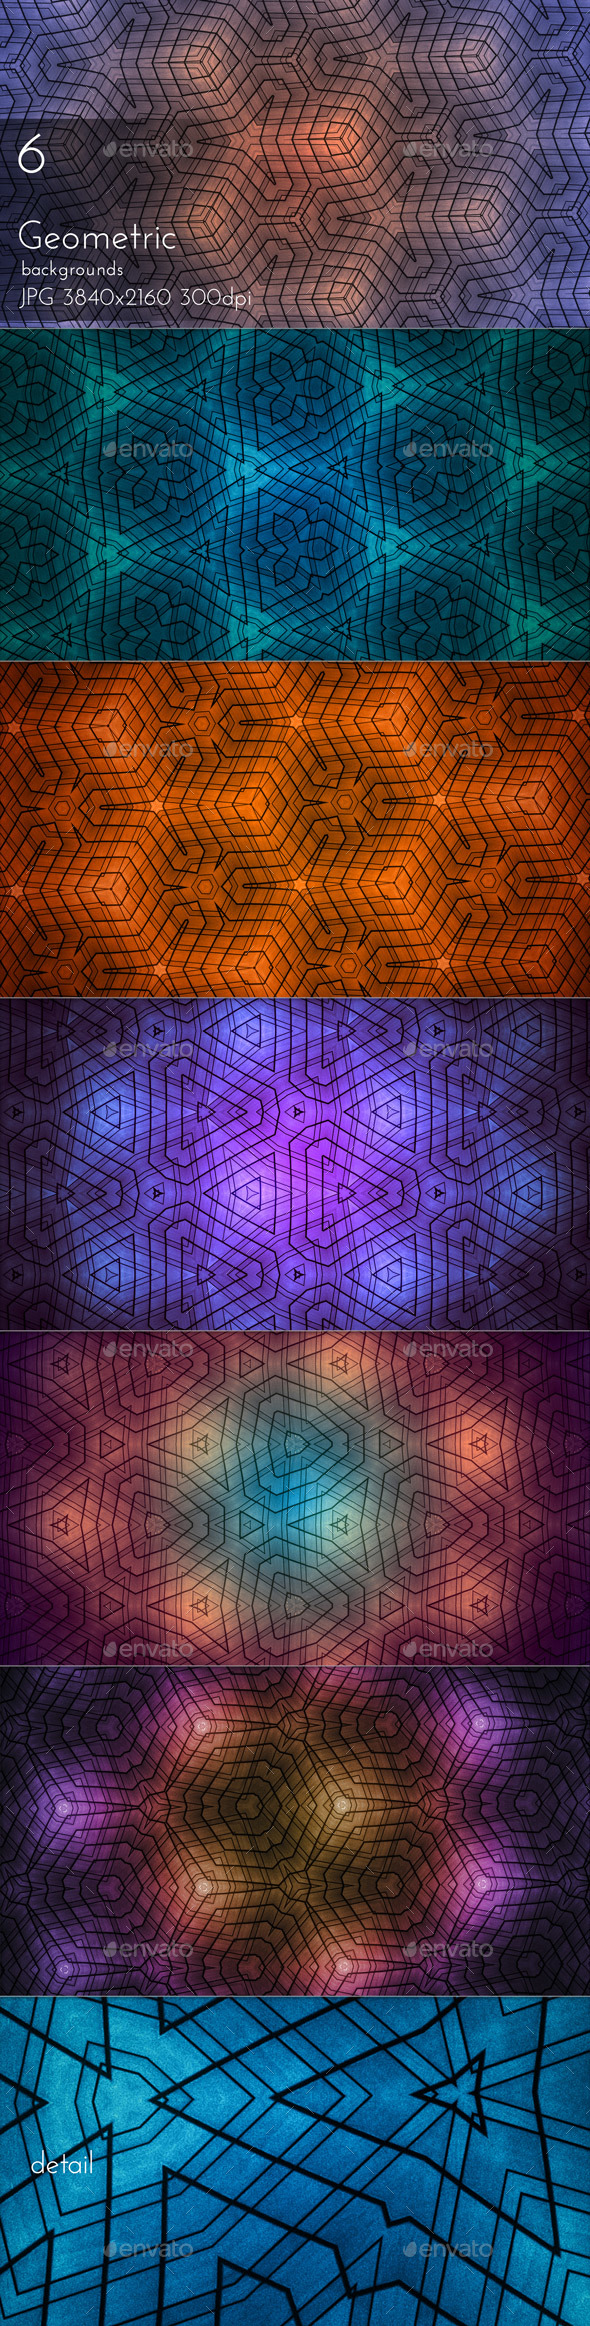 Geometric Background - Patterns Backgrounds